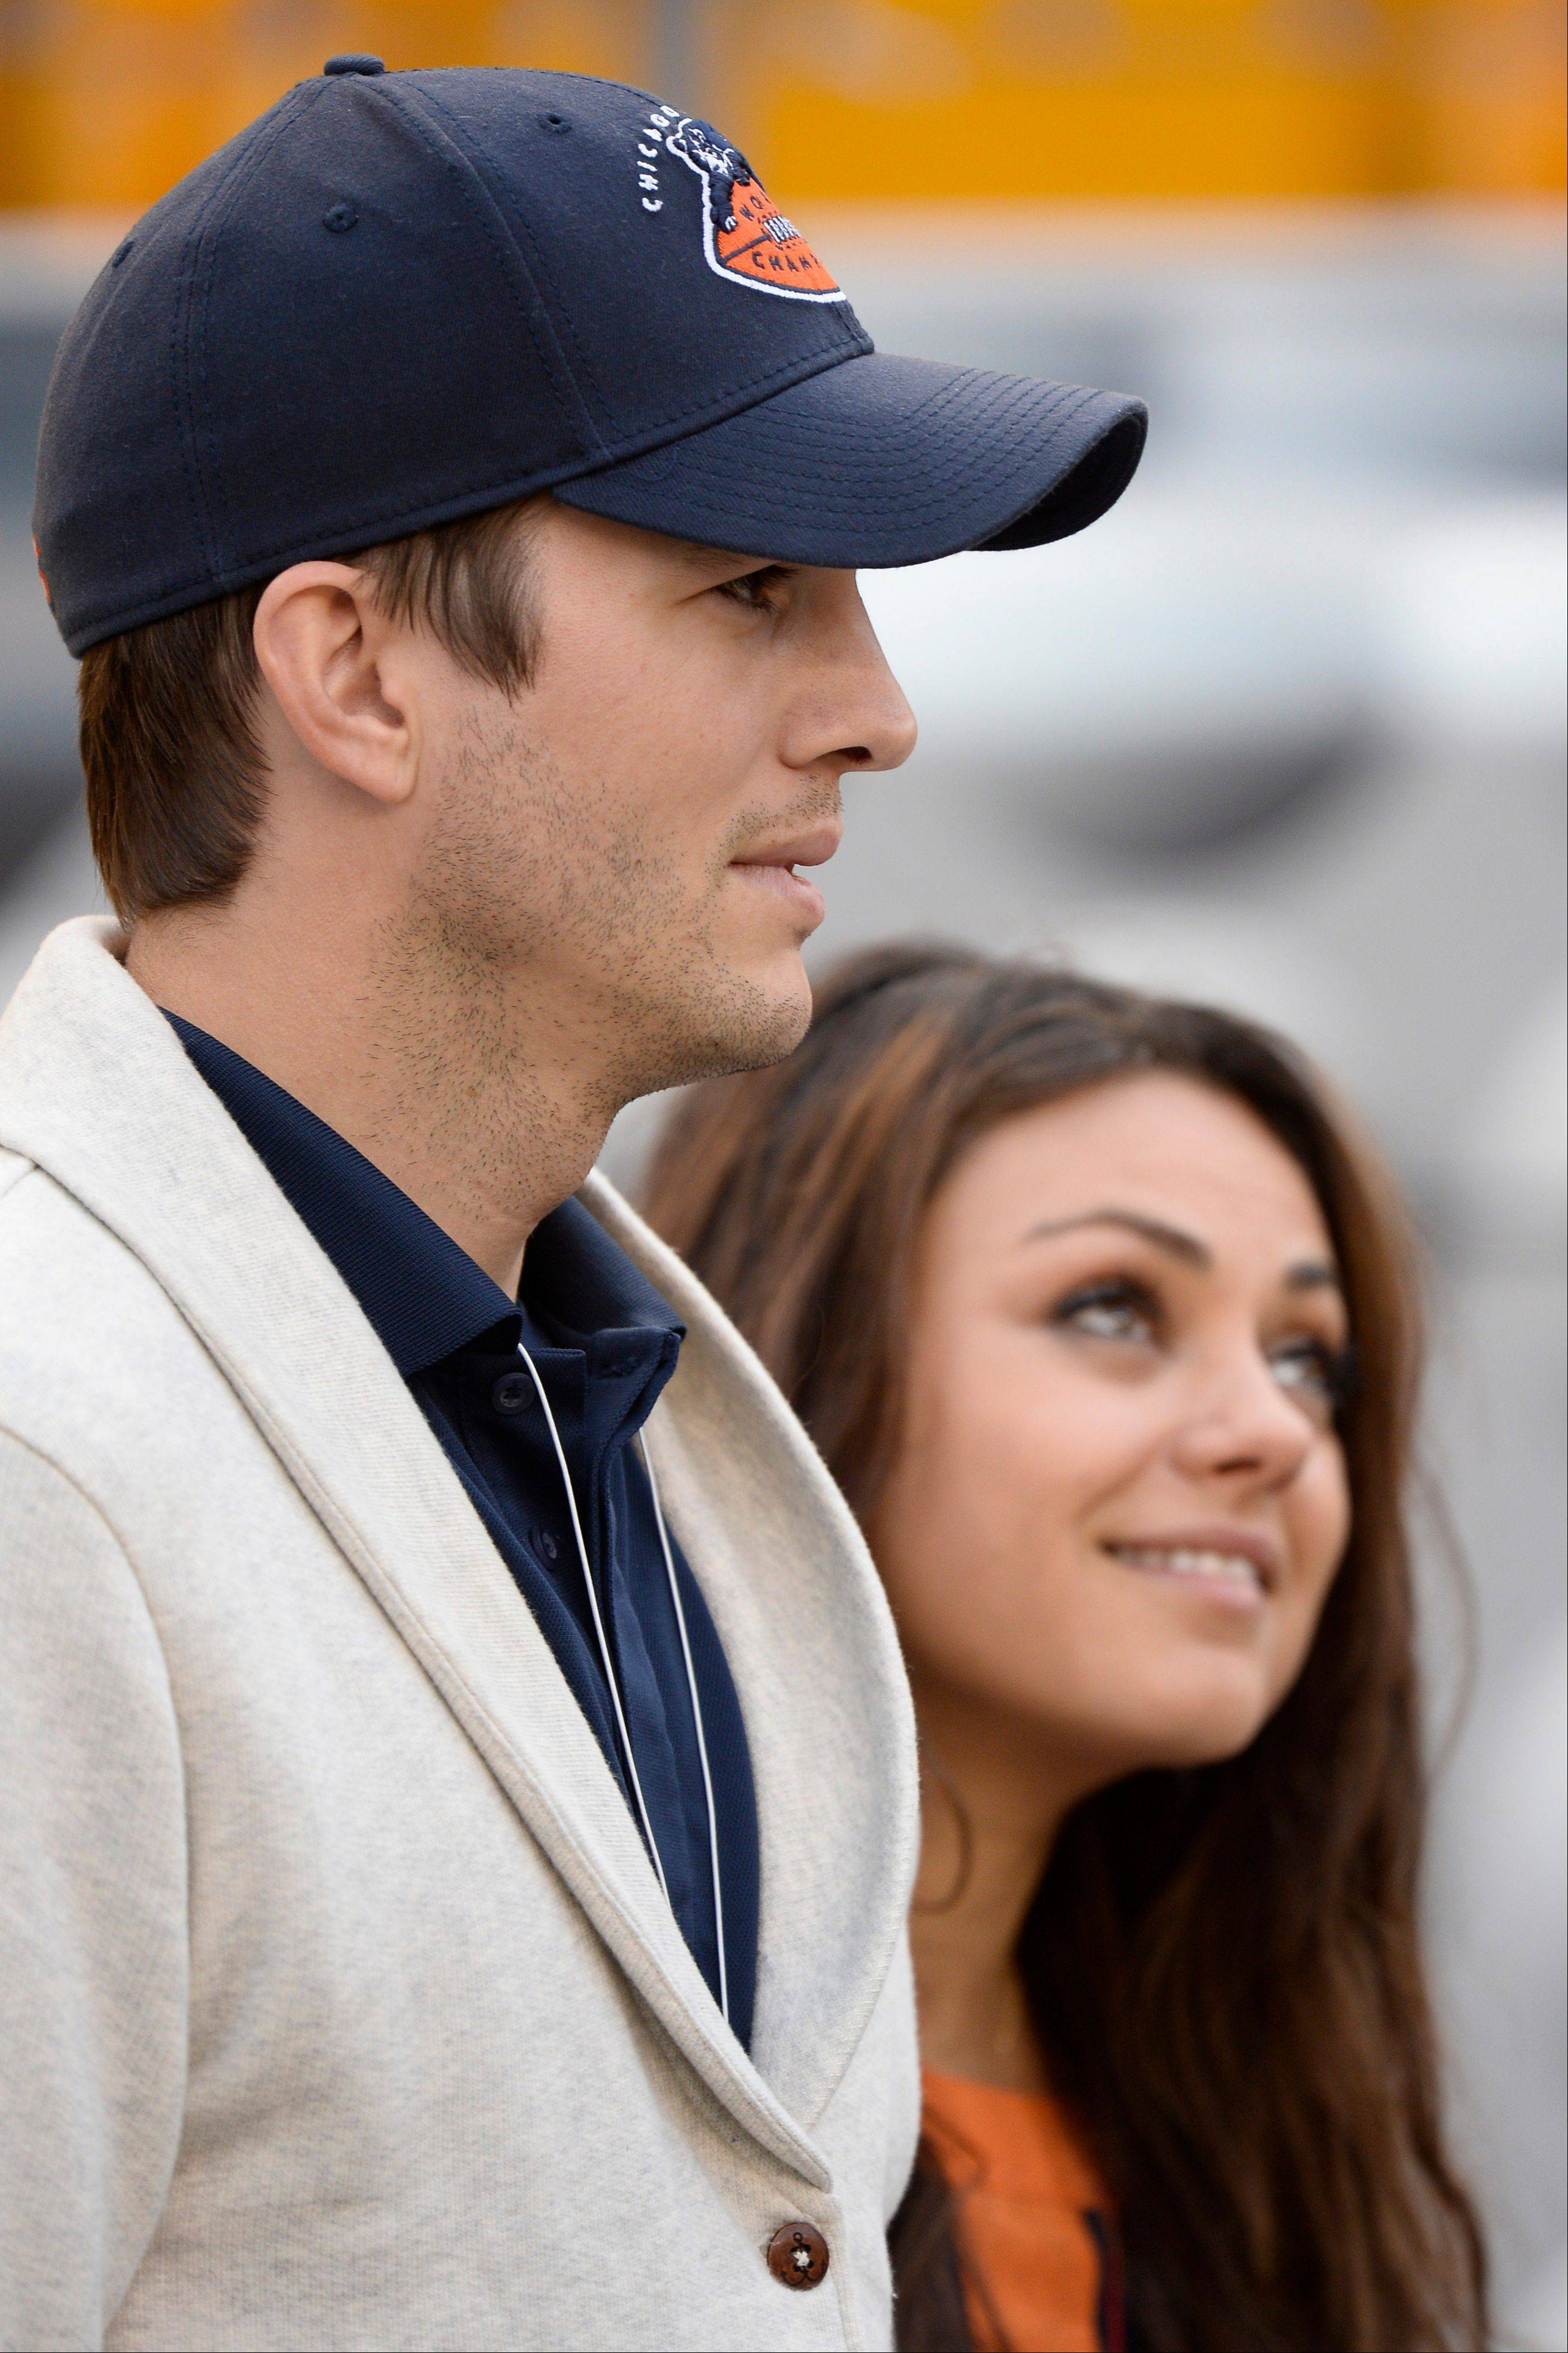 Ashton Kutcher, left, and Mila Kunis were on the Chicago Bears sideline Sunday night to watch the Bears go to 3-0 on the season. Will they be back if the Bears make the NFL playoffs?